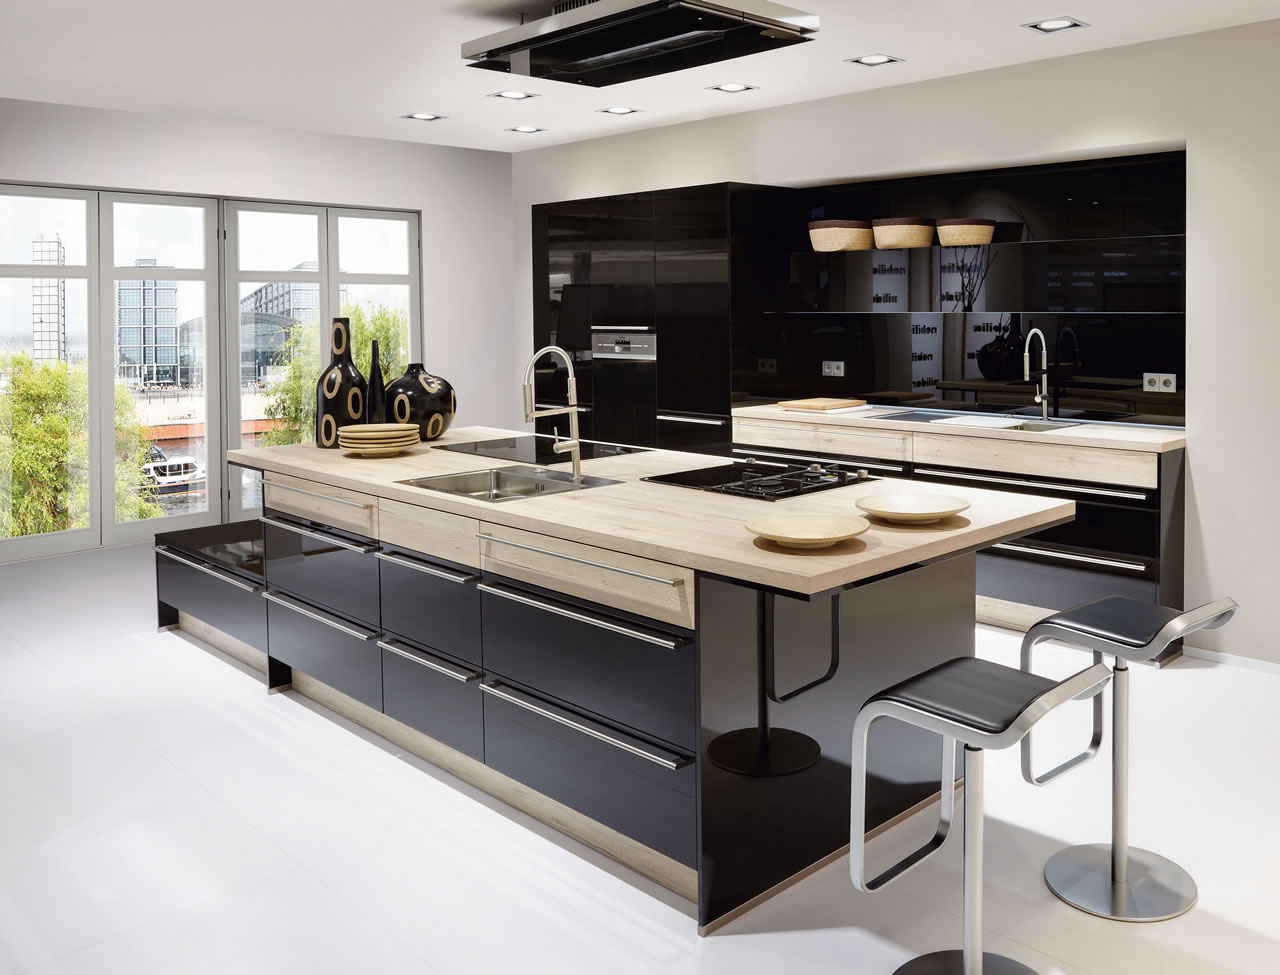 Nobilia Focus Magnolia Hochglanz Kitchen Collections Evoke German Kitchens